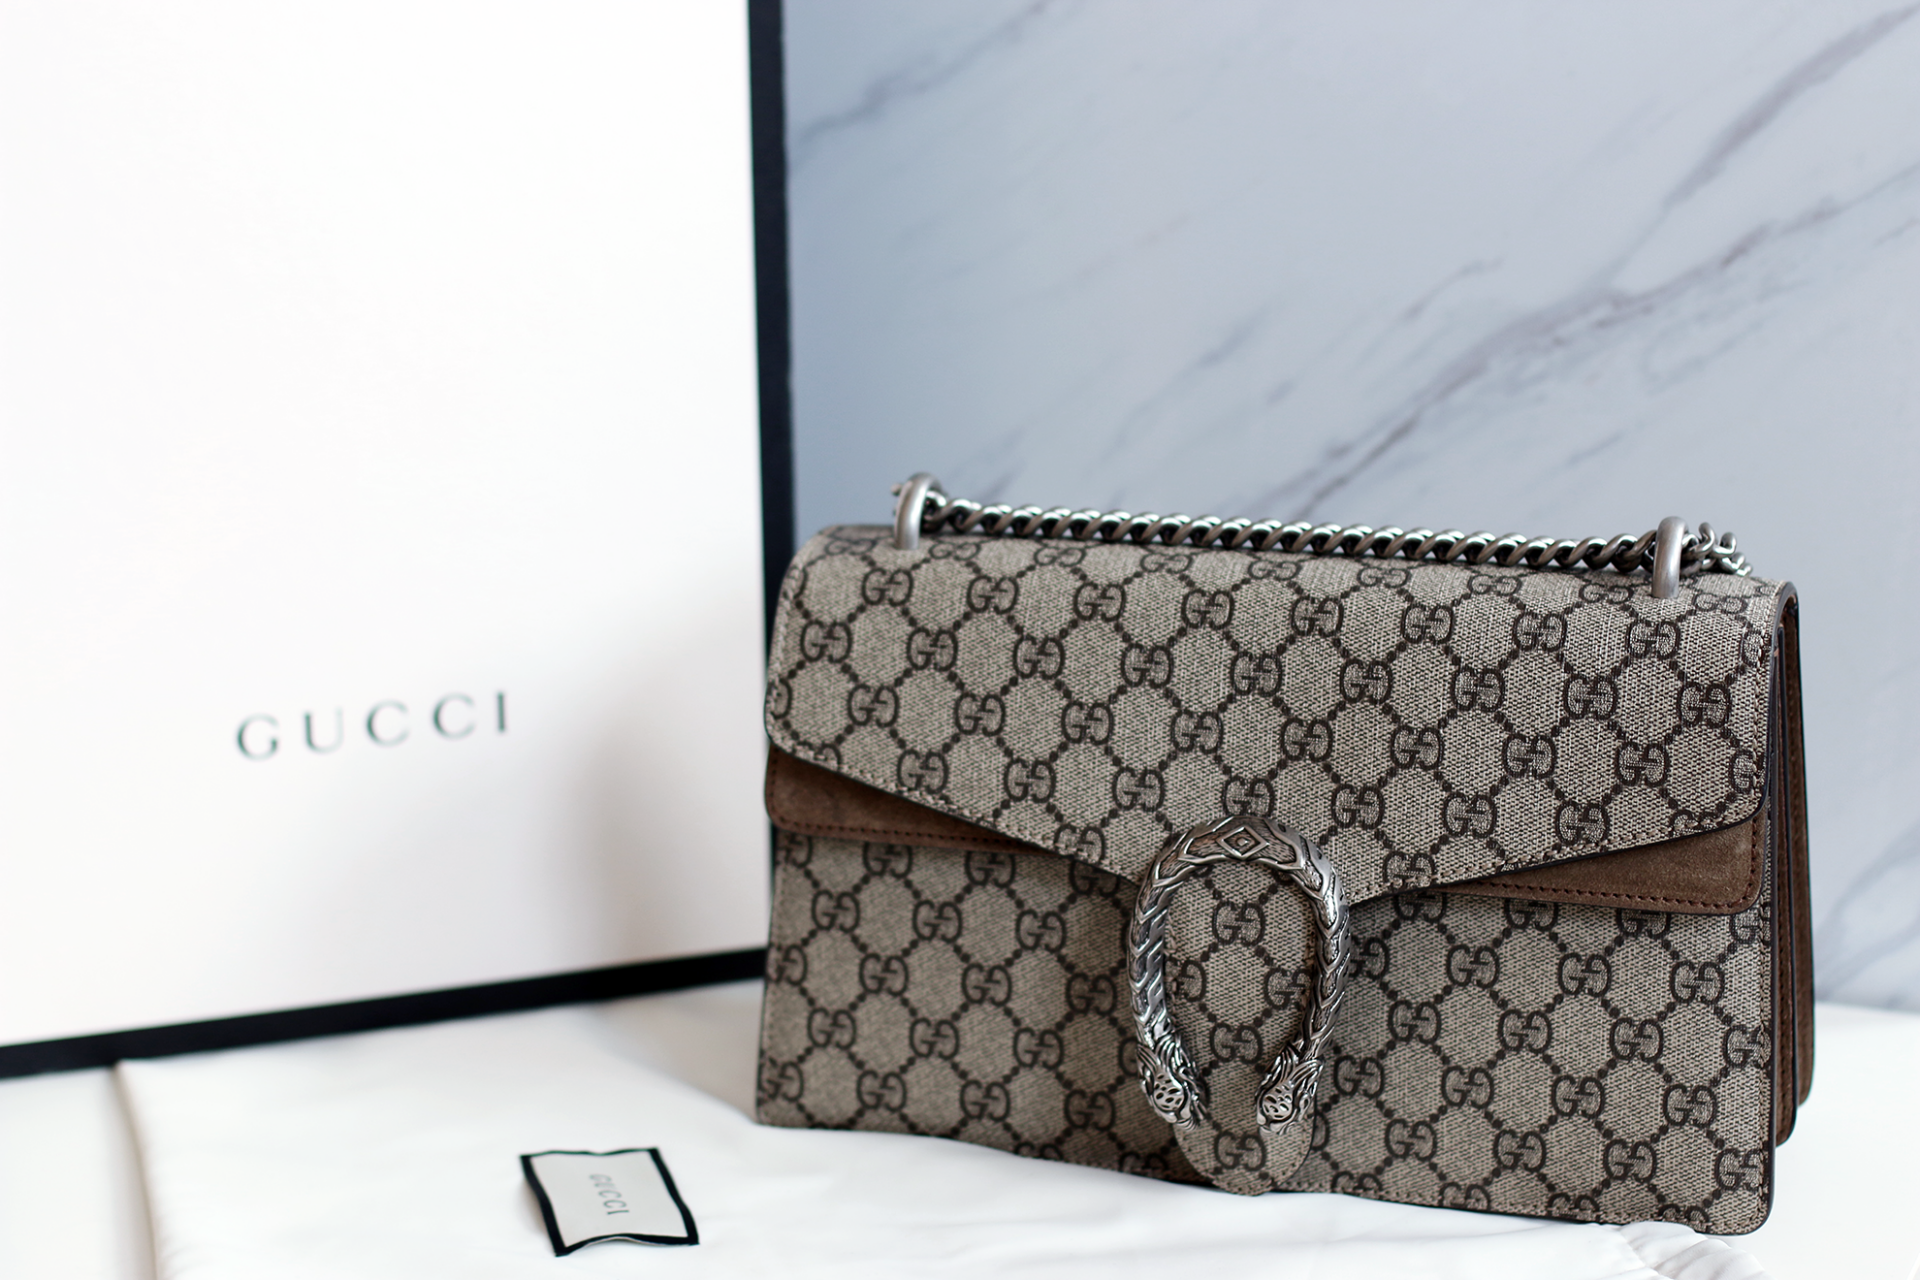 NEW IN | Gucci Dionysus GG Supreme Designer Bag